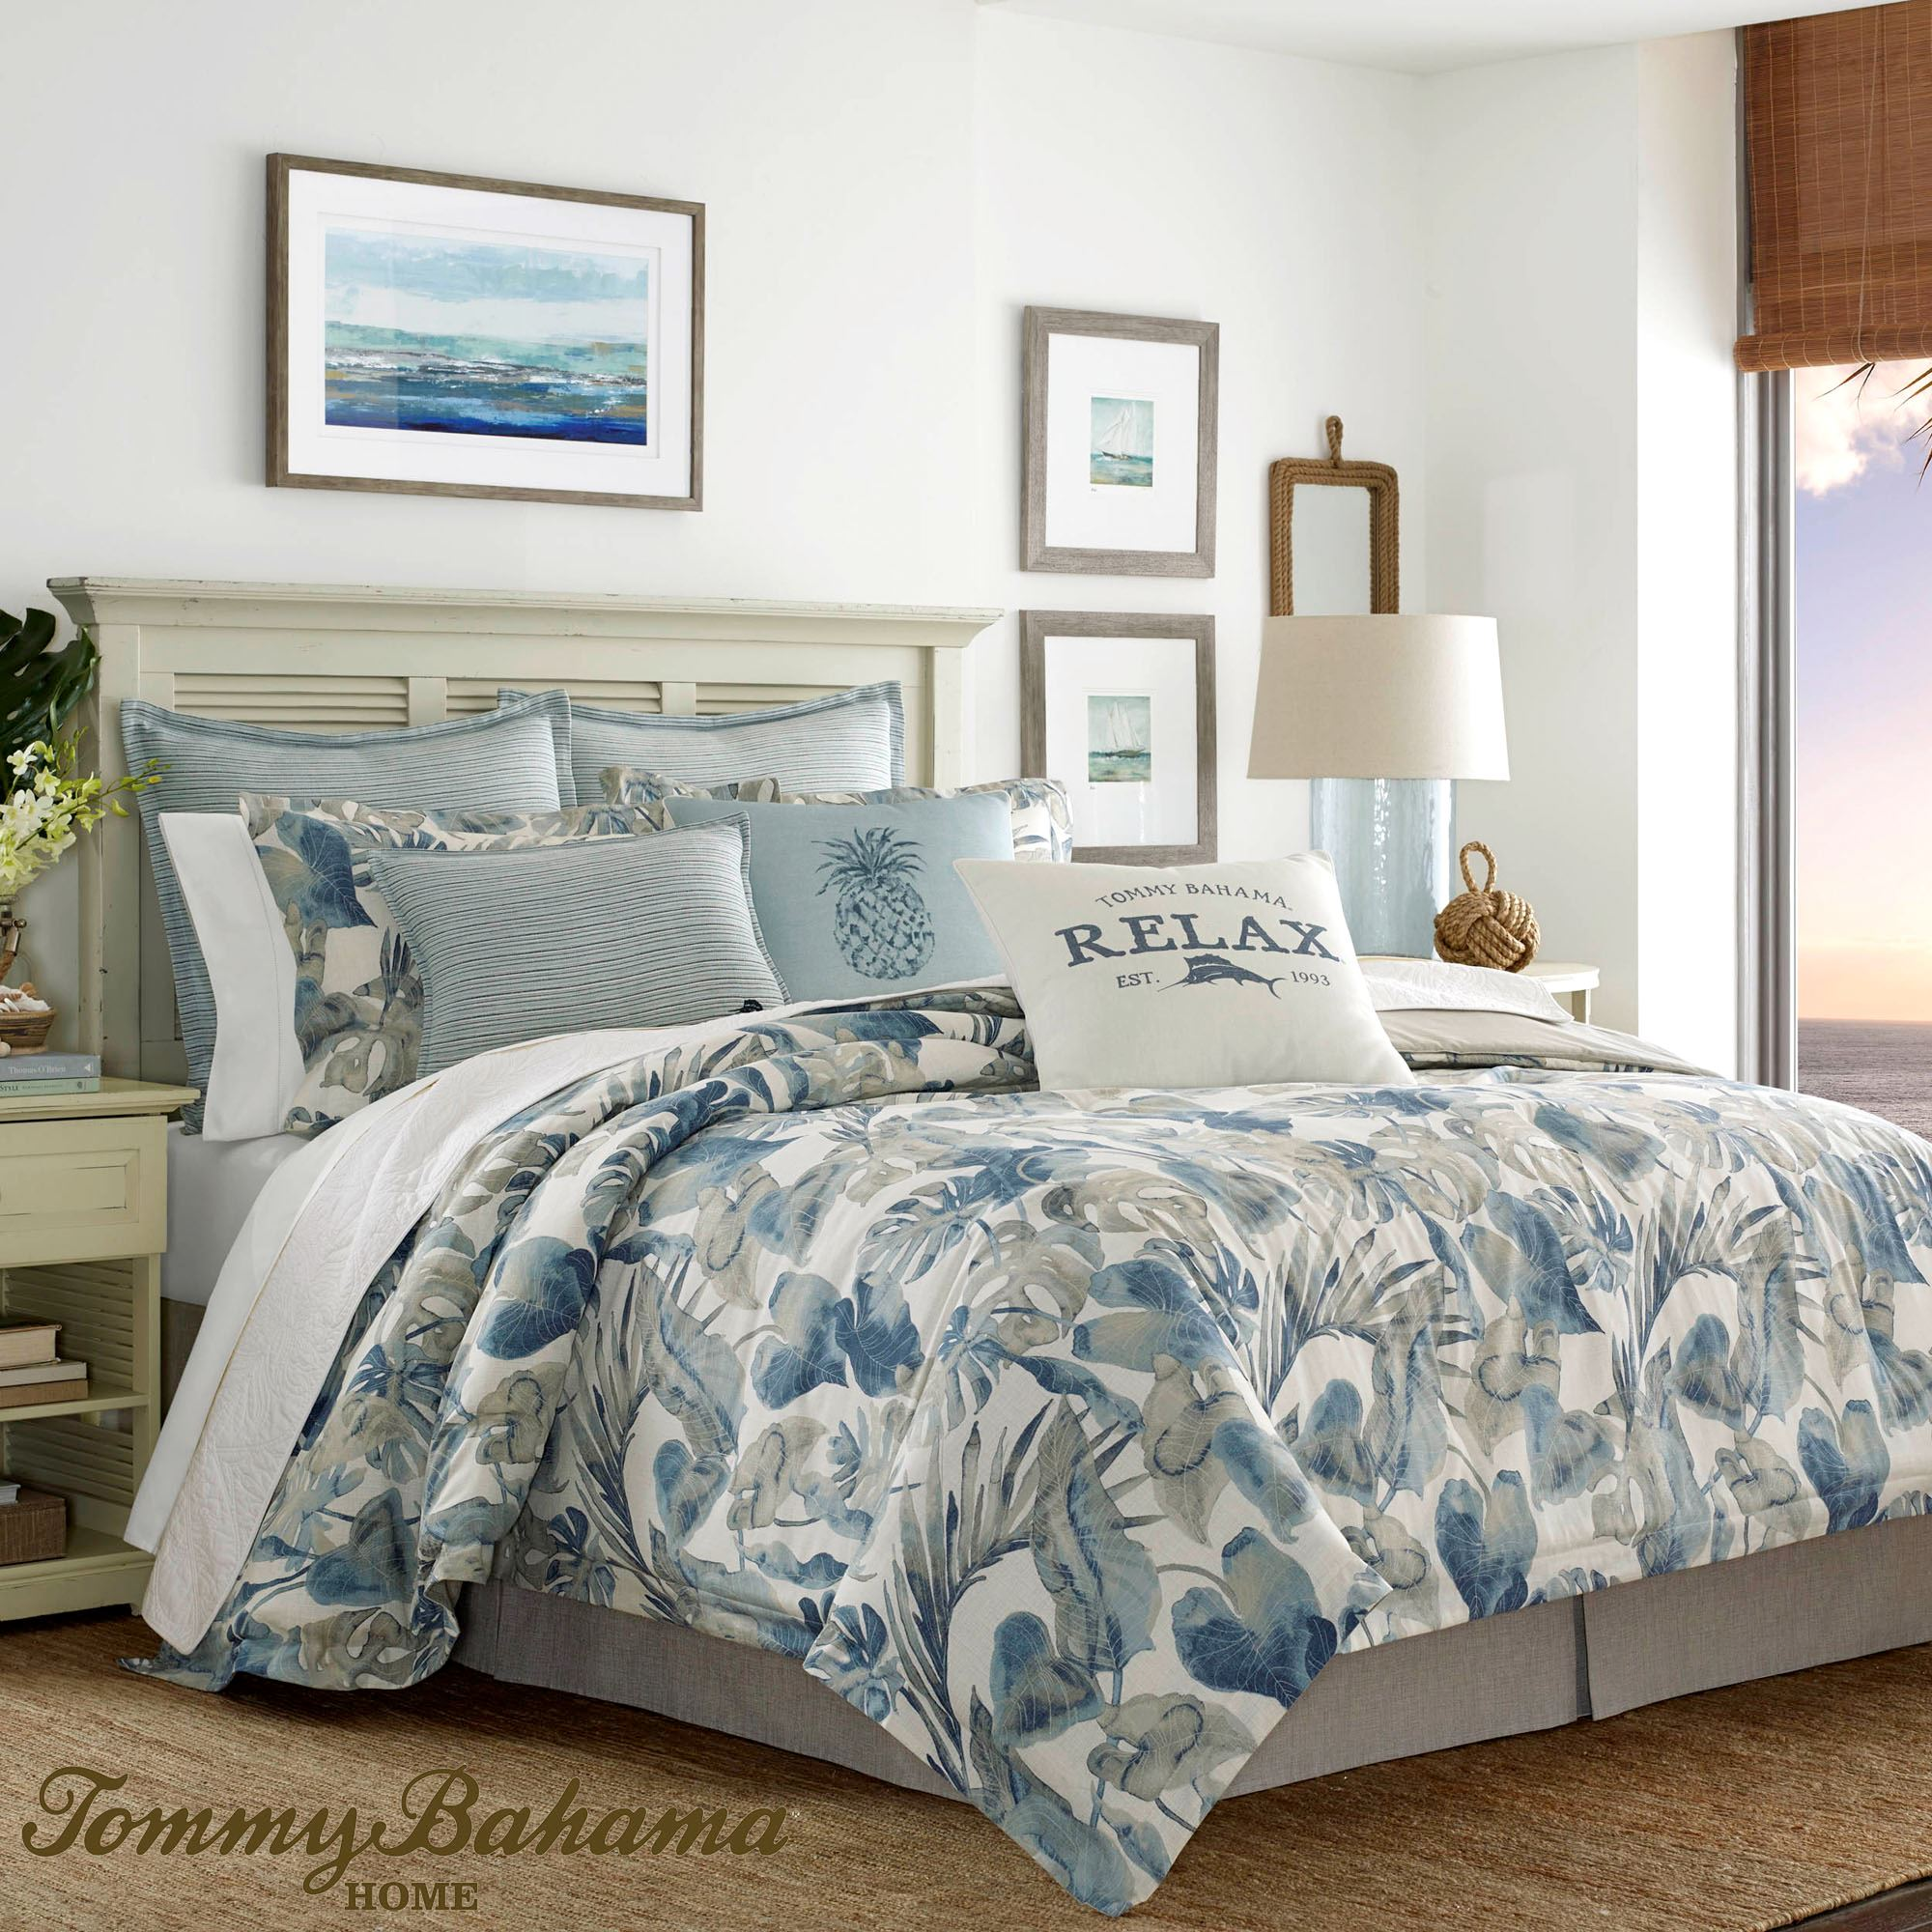 jcpenney themes bedspreads bedding twin bed bedroom terrific themed tropical print quilt colorful coverlets hawaiian for quilts beach comforters hawaii and comforter